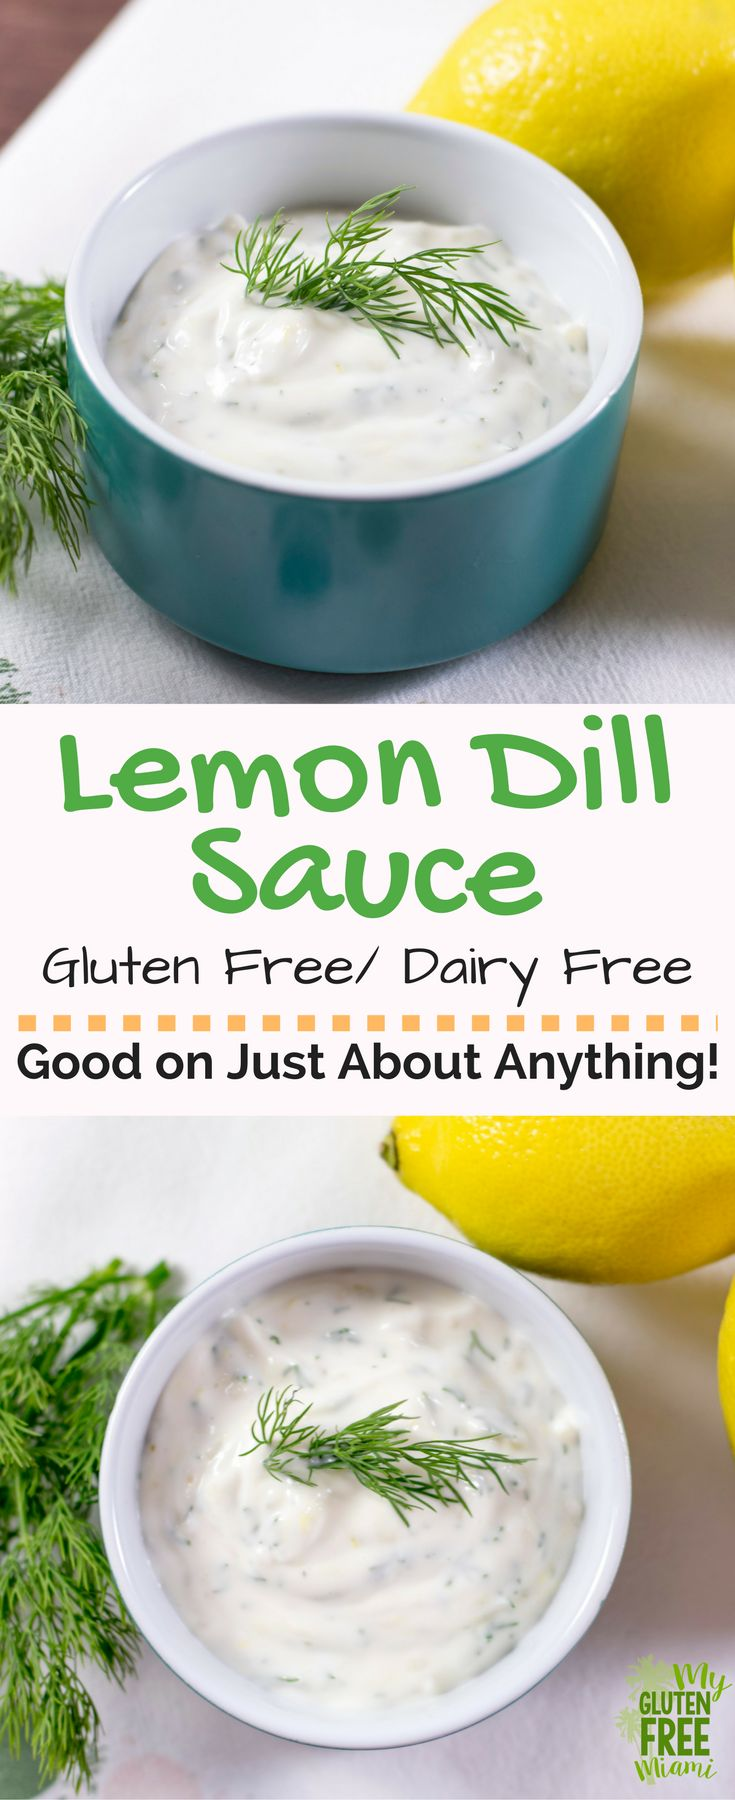 Both gluten free and dairy free, this lemon dill sauce is a flavor combo that will add a wow factor to any dish. Perfect as a dipping sauce for fried fish or on top of salmon! Only takes 5 minutes to make with 5 ingredients. No cooking required! via @GLUTENFREEMIAMI